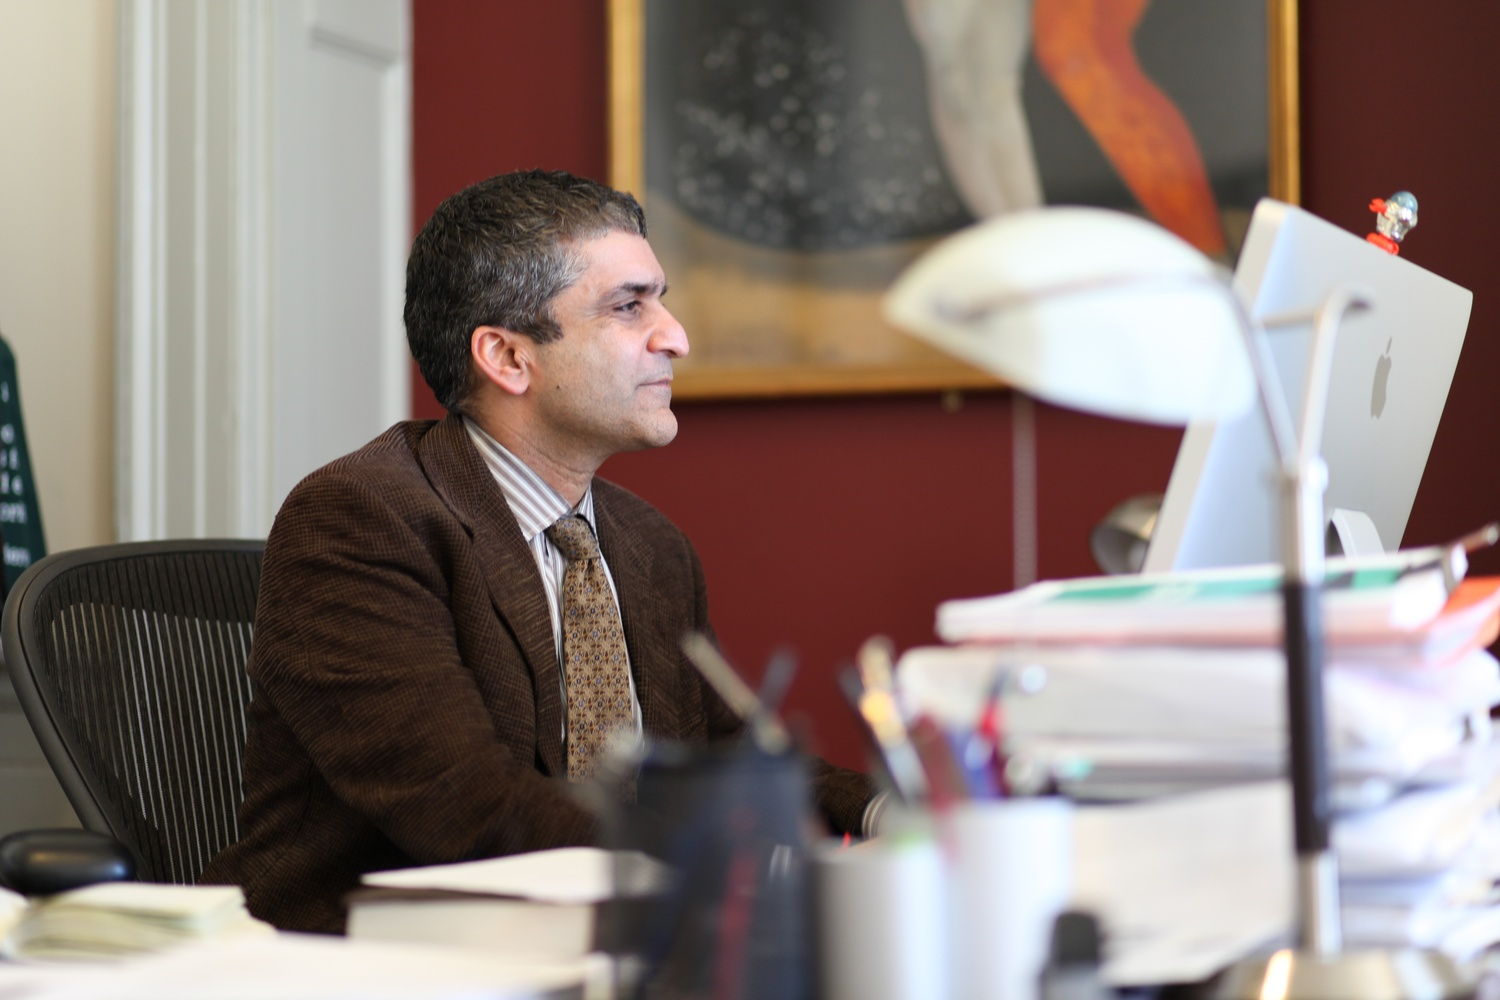 Dean of the College Rakesh Khurana sits at his desk in University Hall.